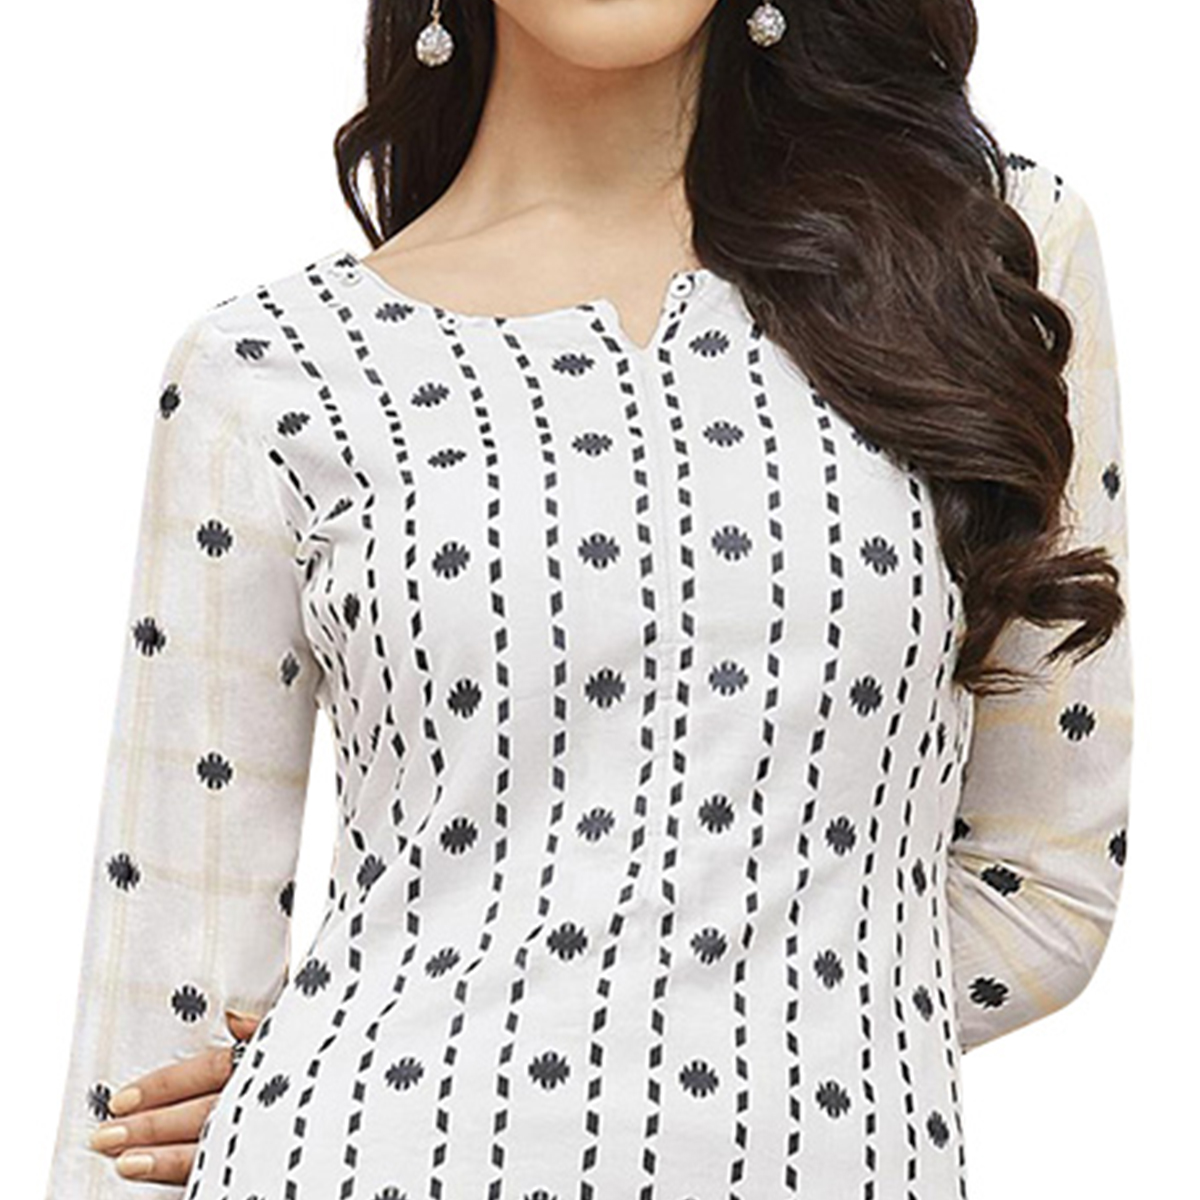 Desiring White Colored Partywear Printed-Embroidered Cotton Suit